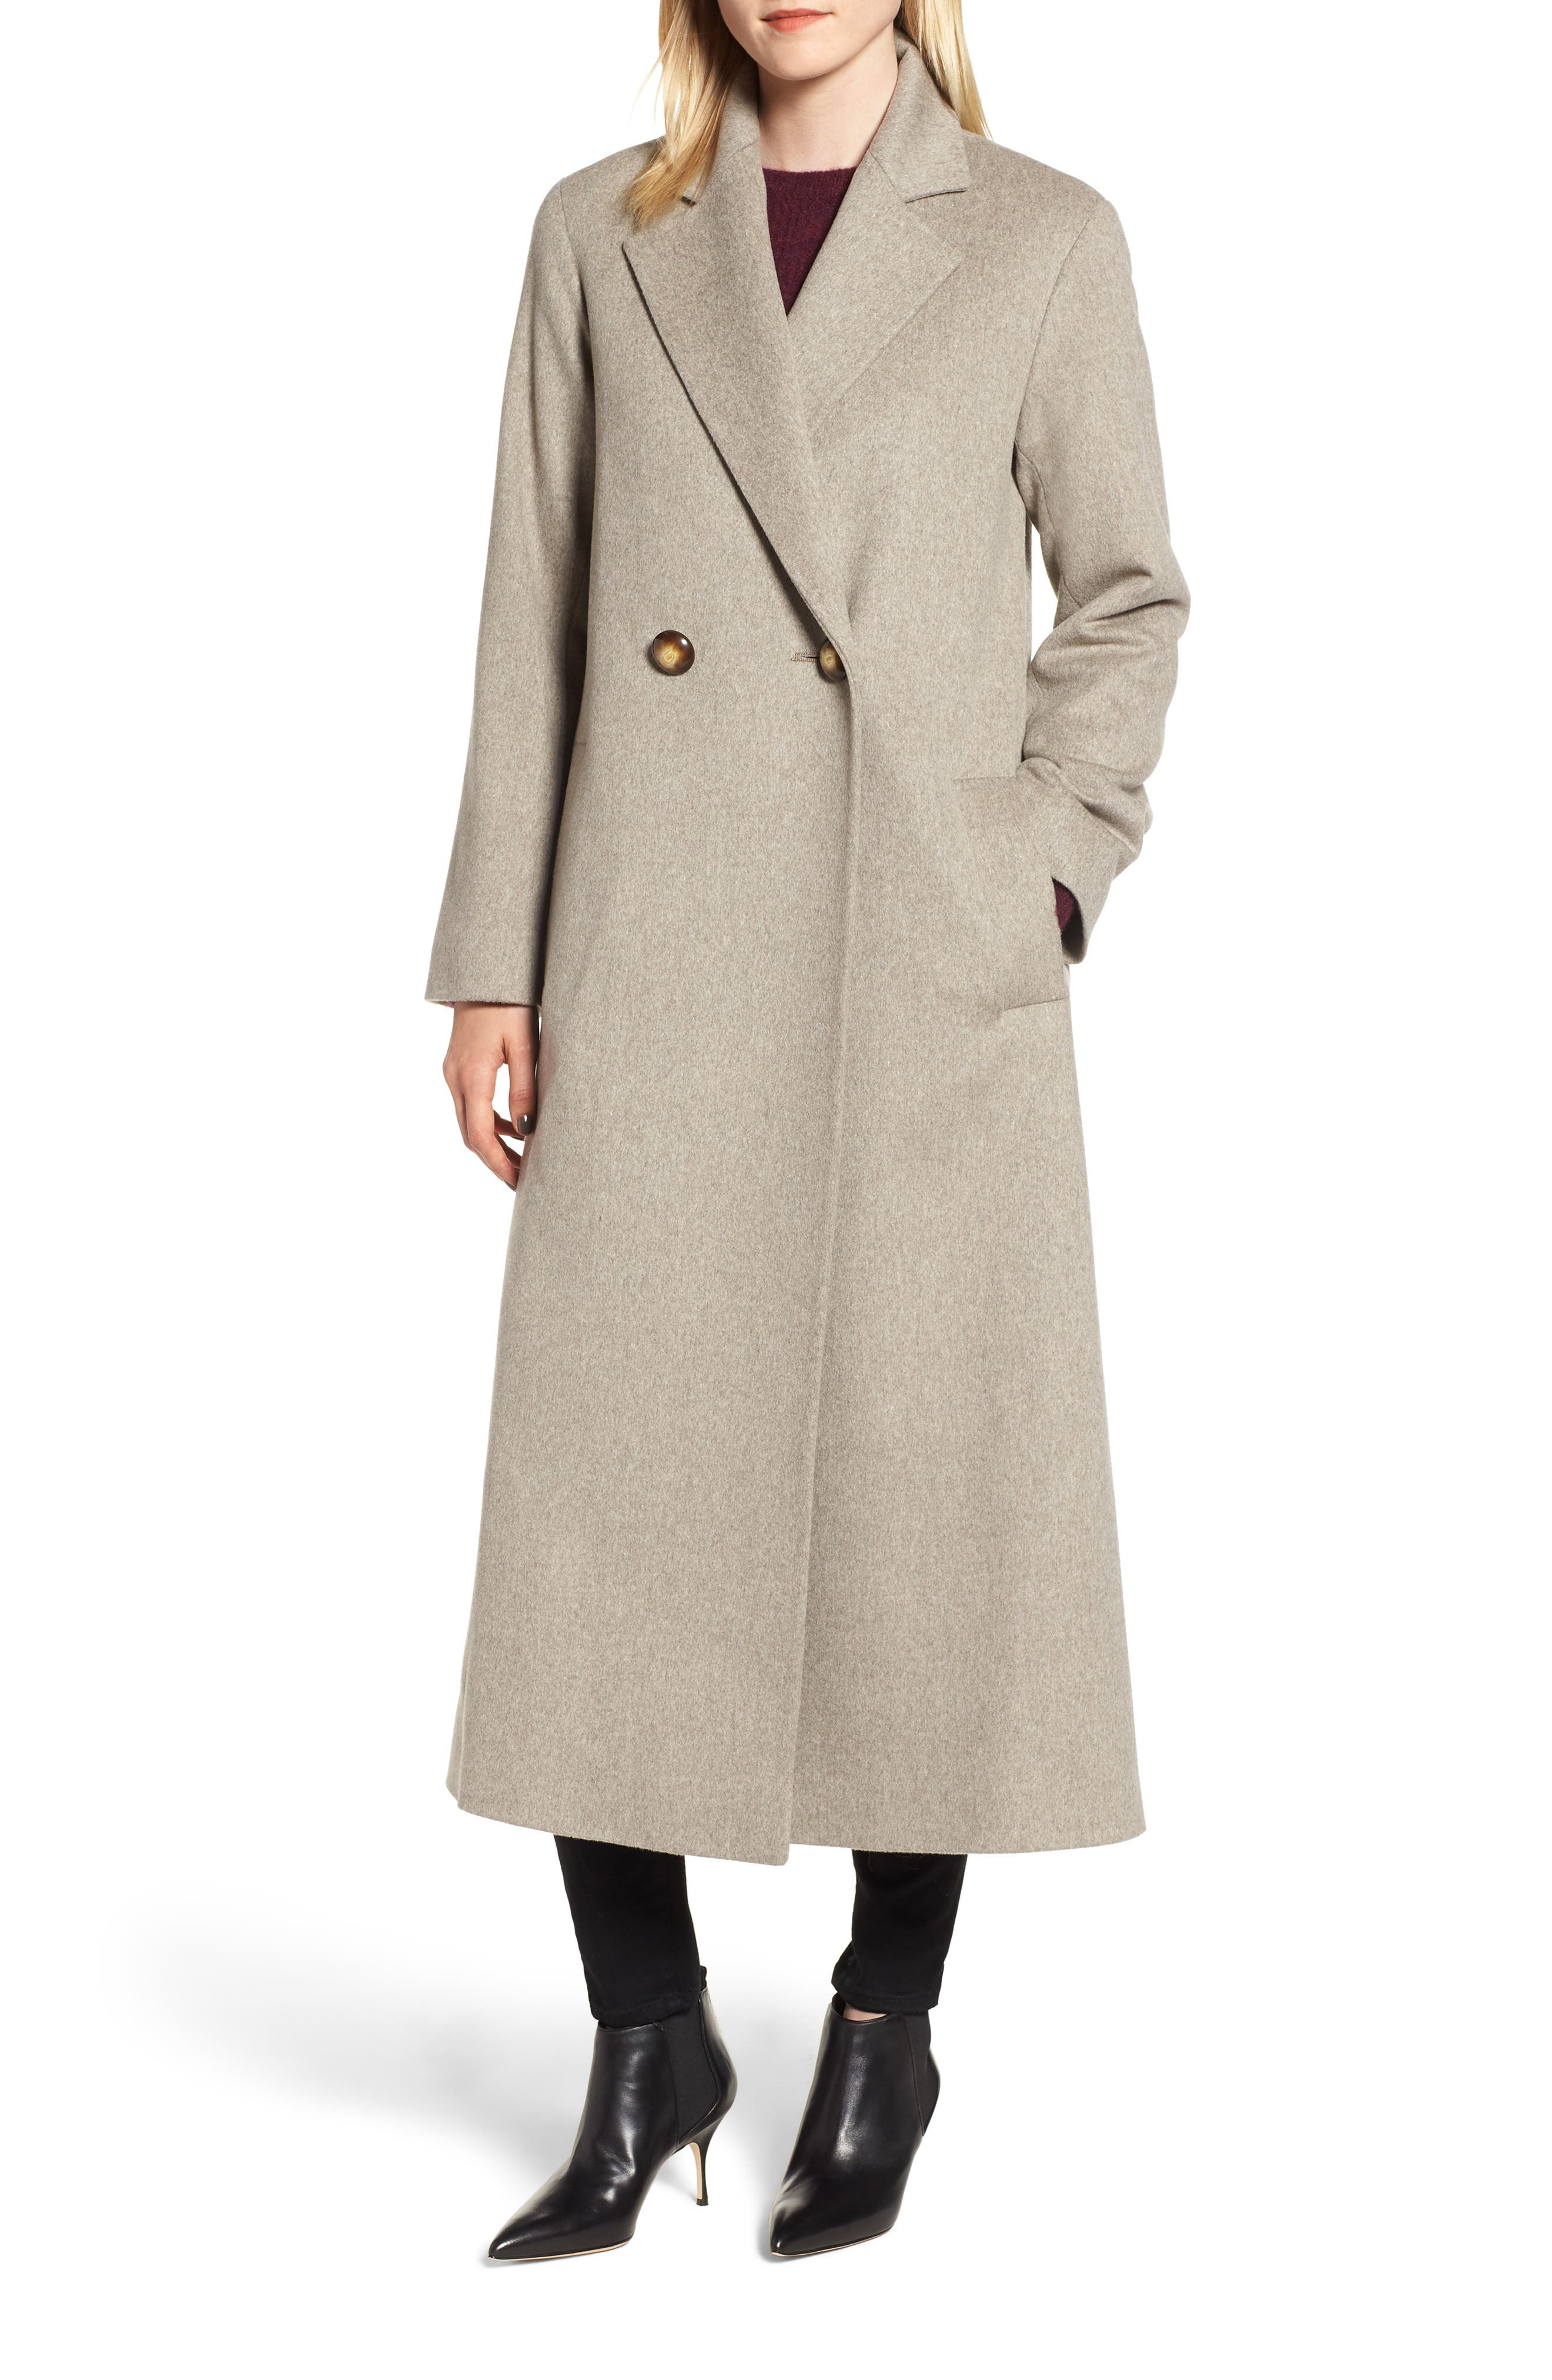 Coats Nordstrom Breasted amp; Double Jackets Women's Sfgwqx